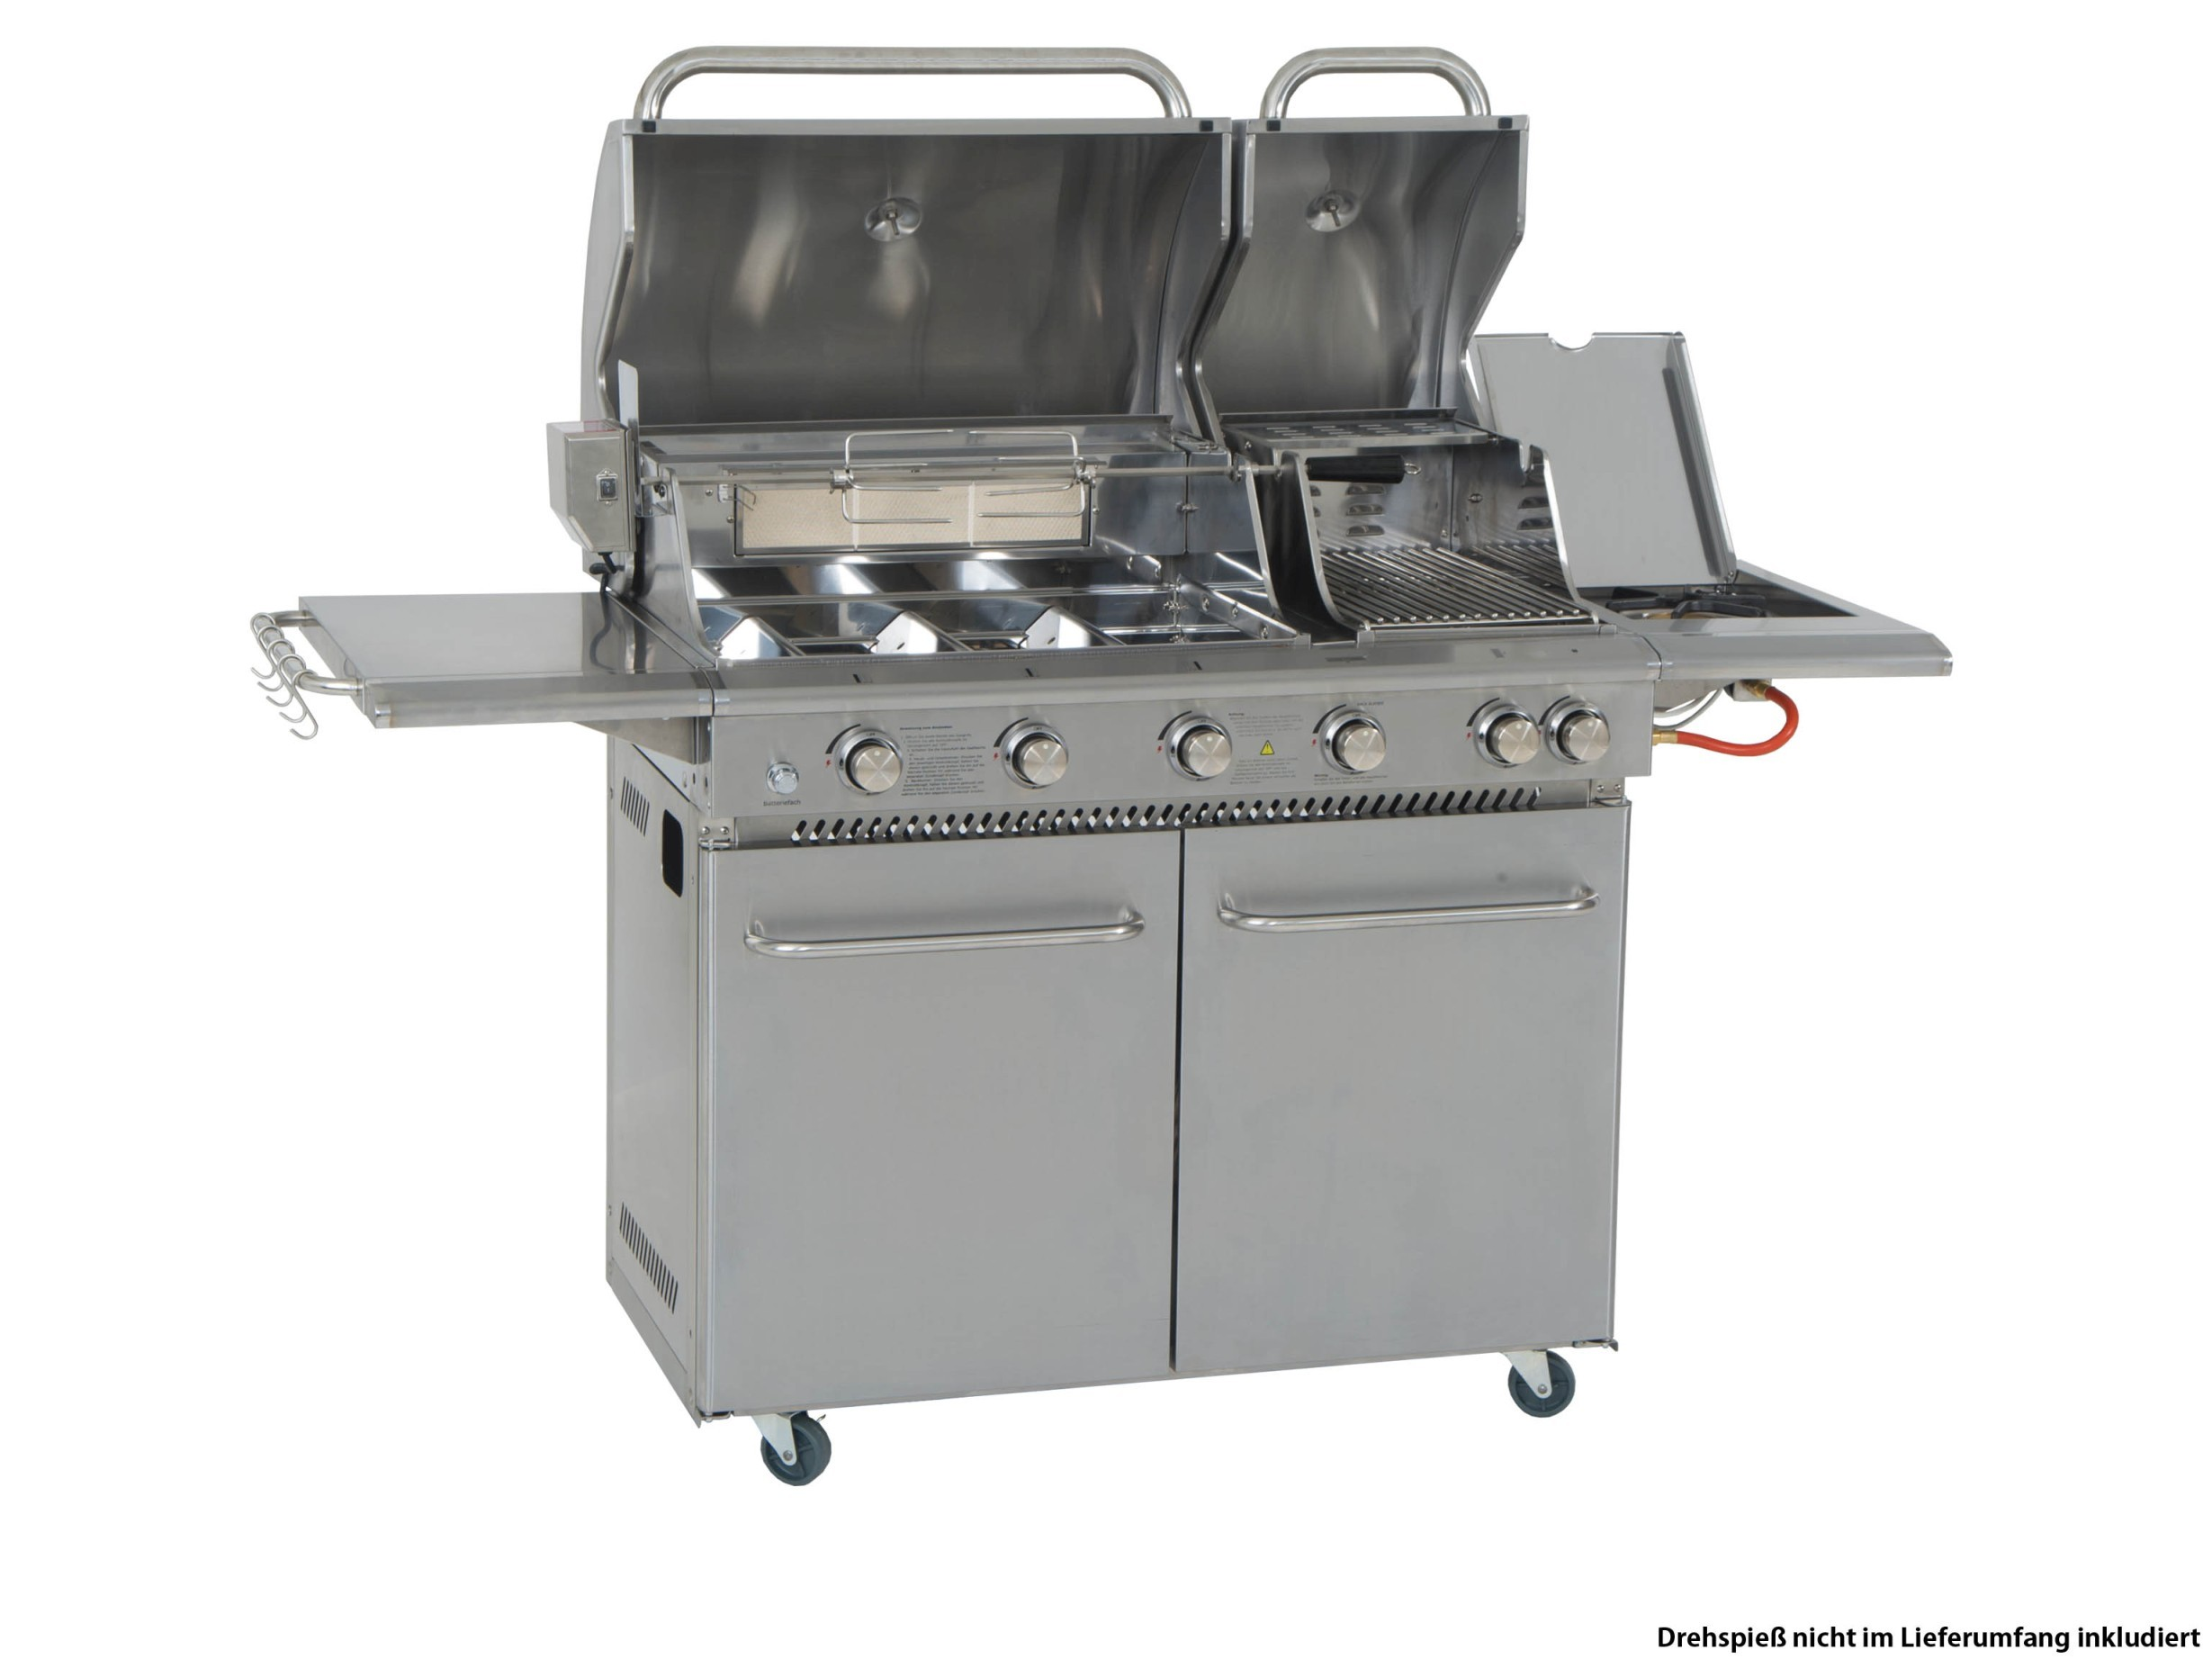 Test Gasgrill Mit Infrarotbrenner : Coobinox gasgrill double power